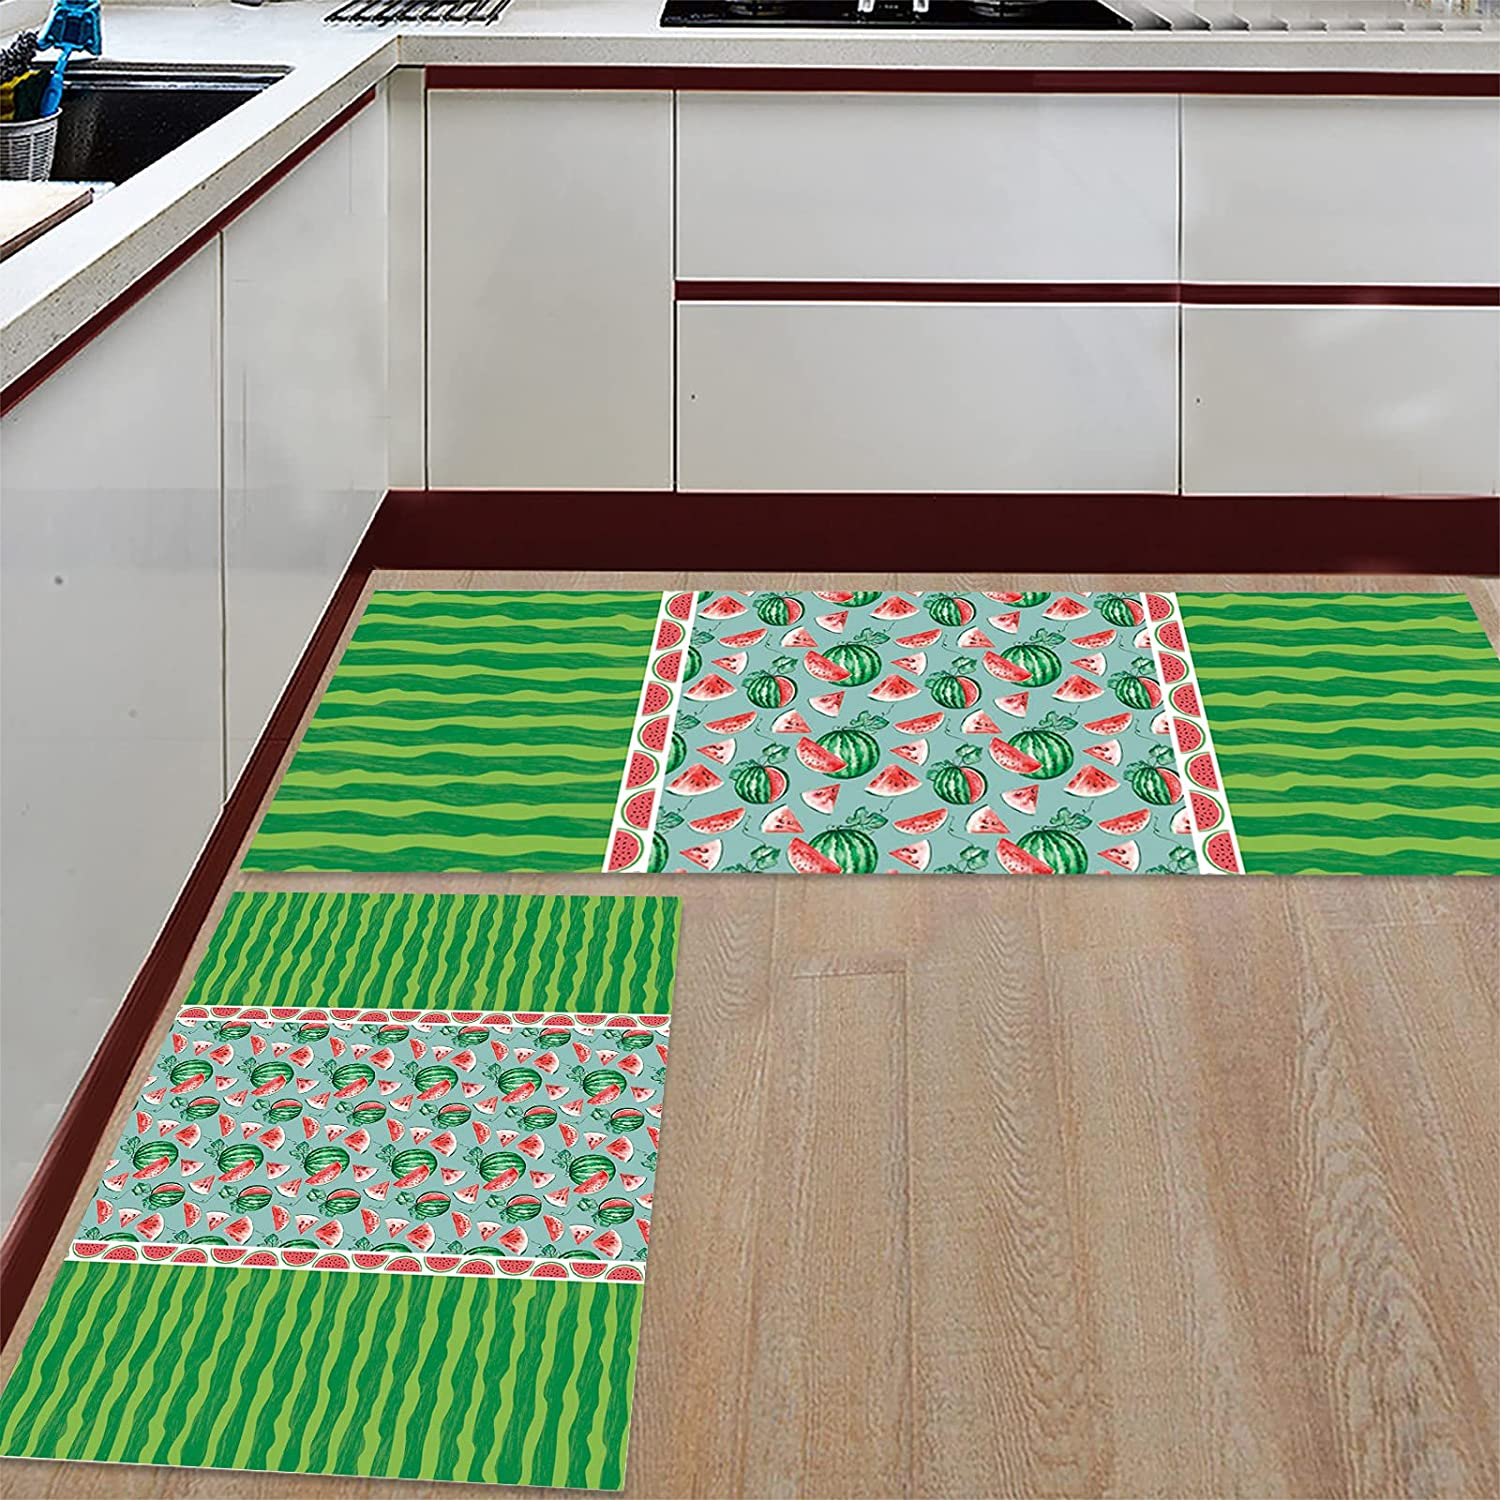 Teamery Kitchen Rugs and Mats Set Runner Comfort 2 Max 61% OFF Cushioned of Recommended